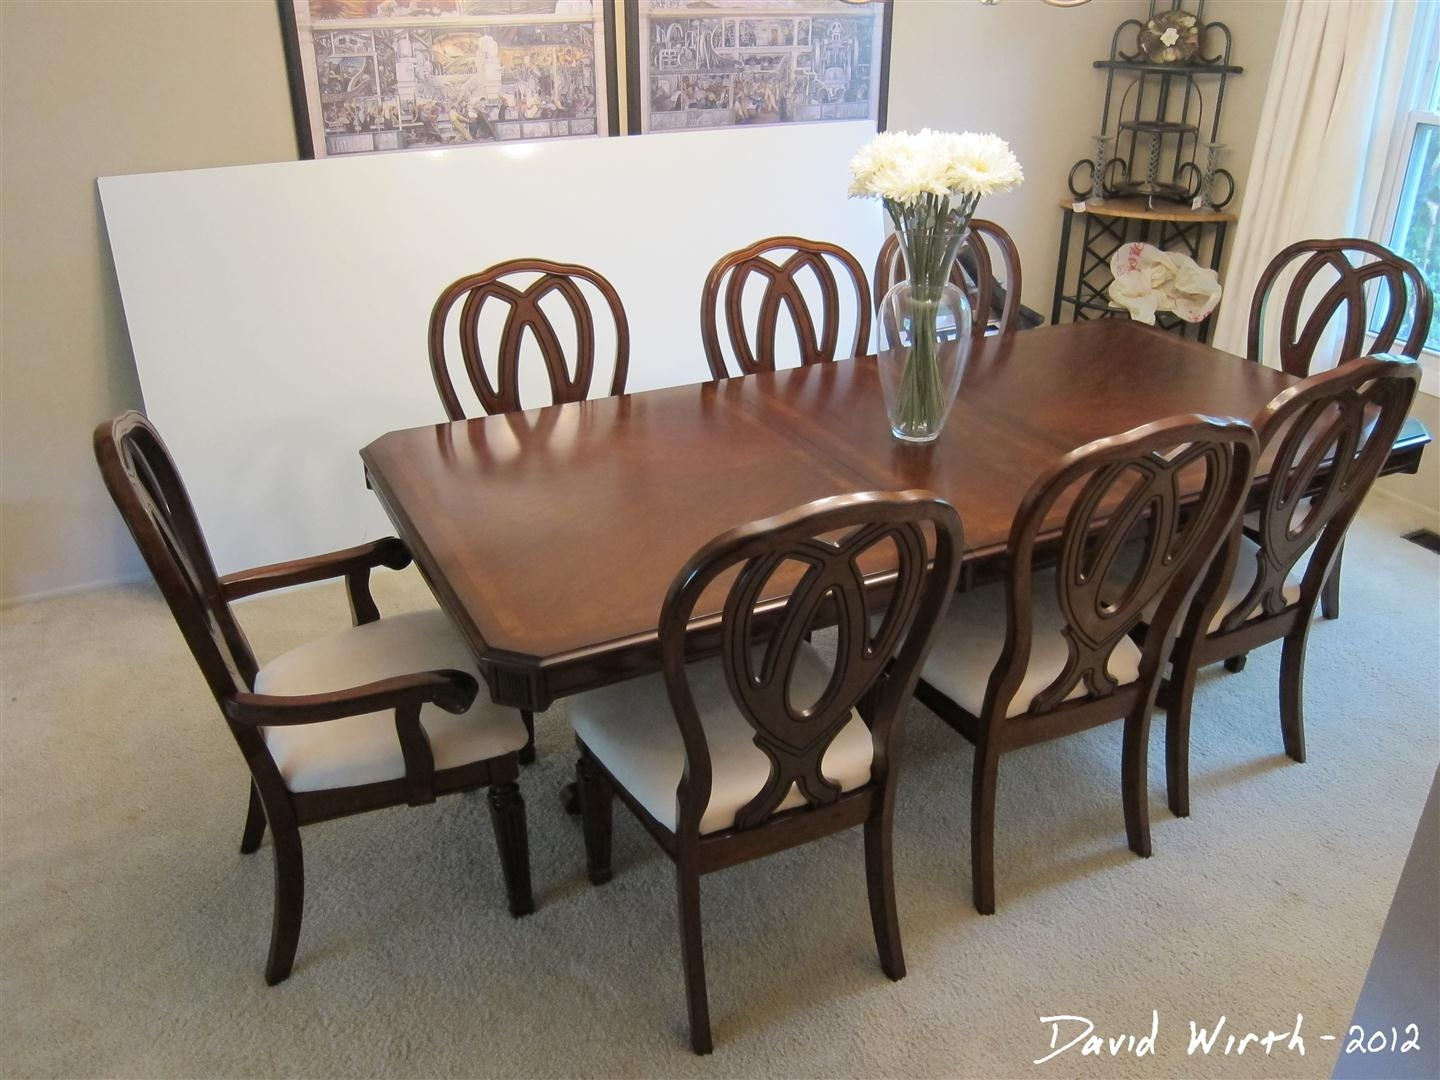 craigslist dining table and chairs brightonandhove - Opnodes